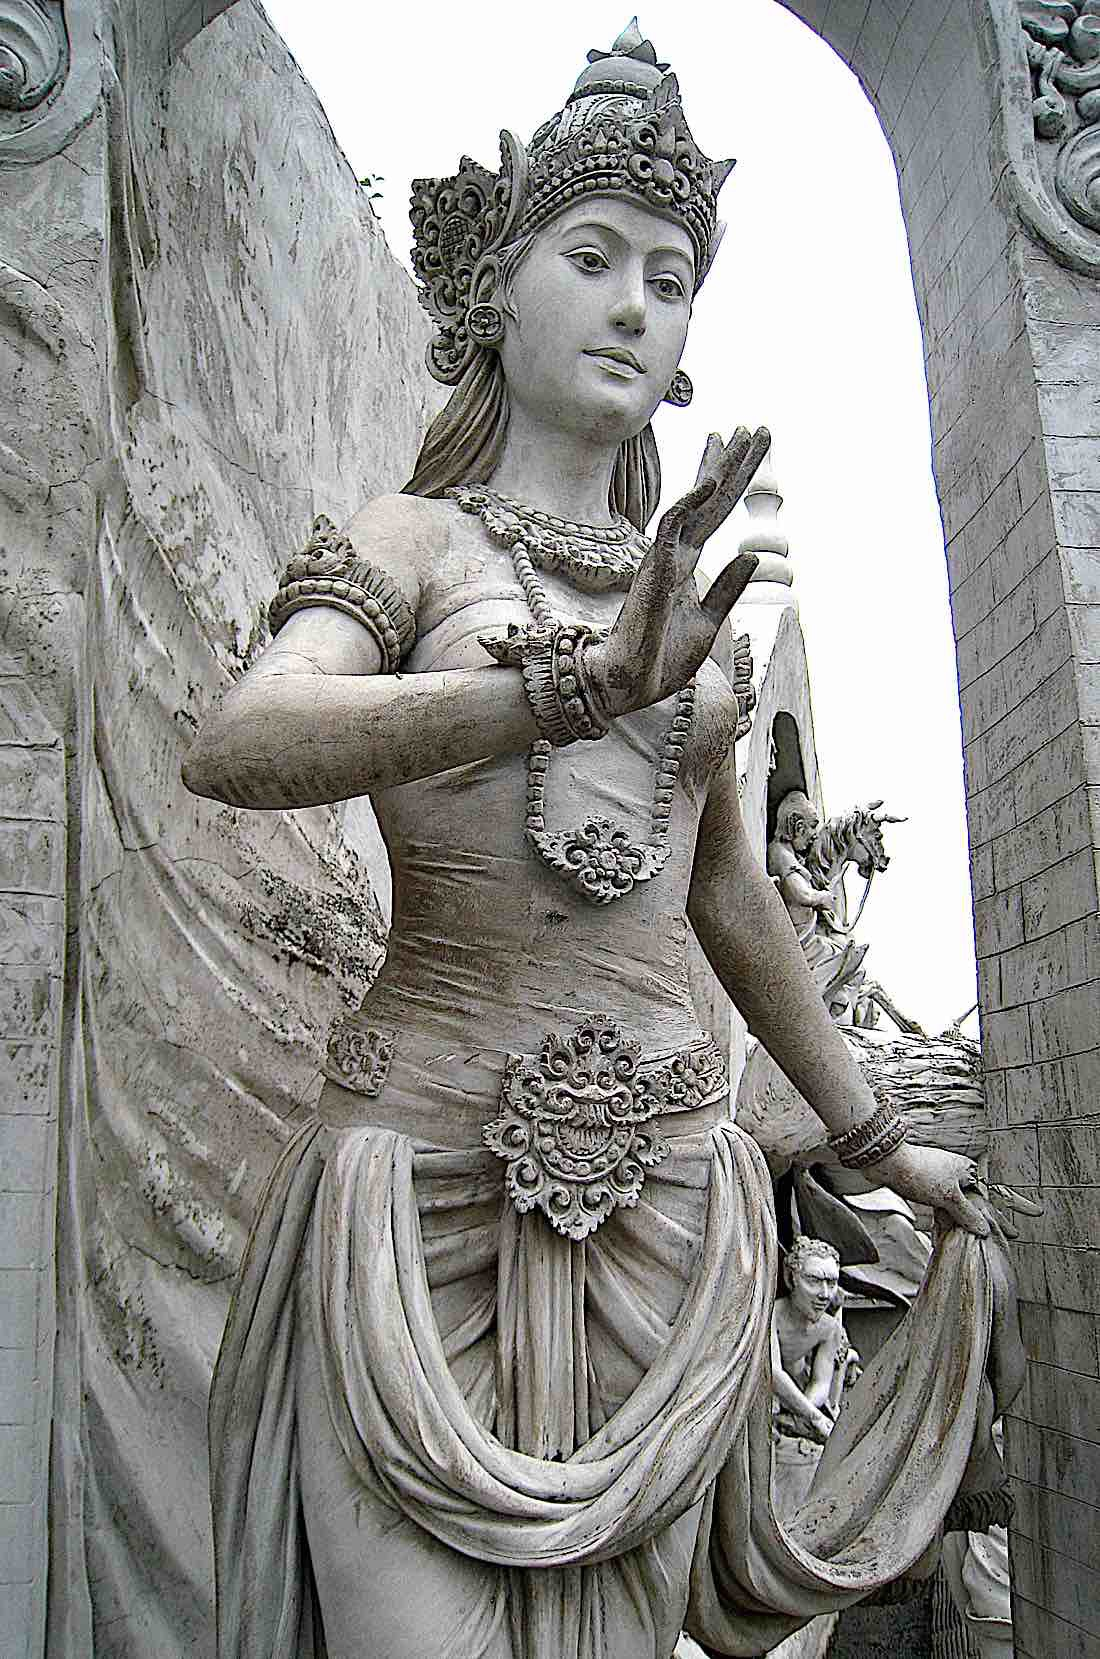 Buddha Weekly Statue of Goddess or Queen at Monas Buddhism